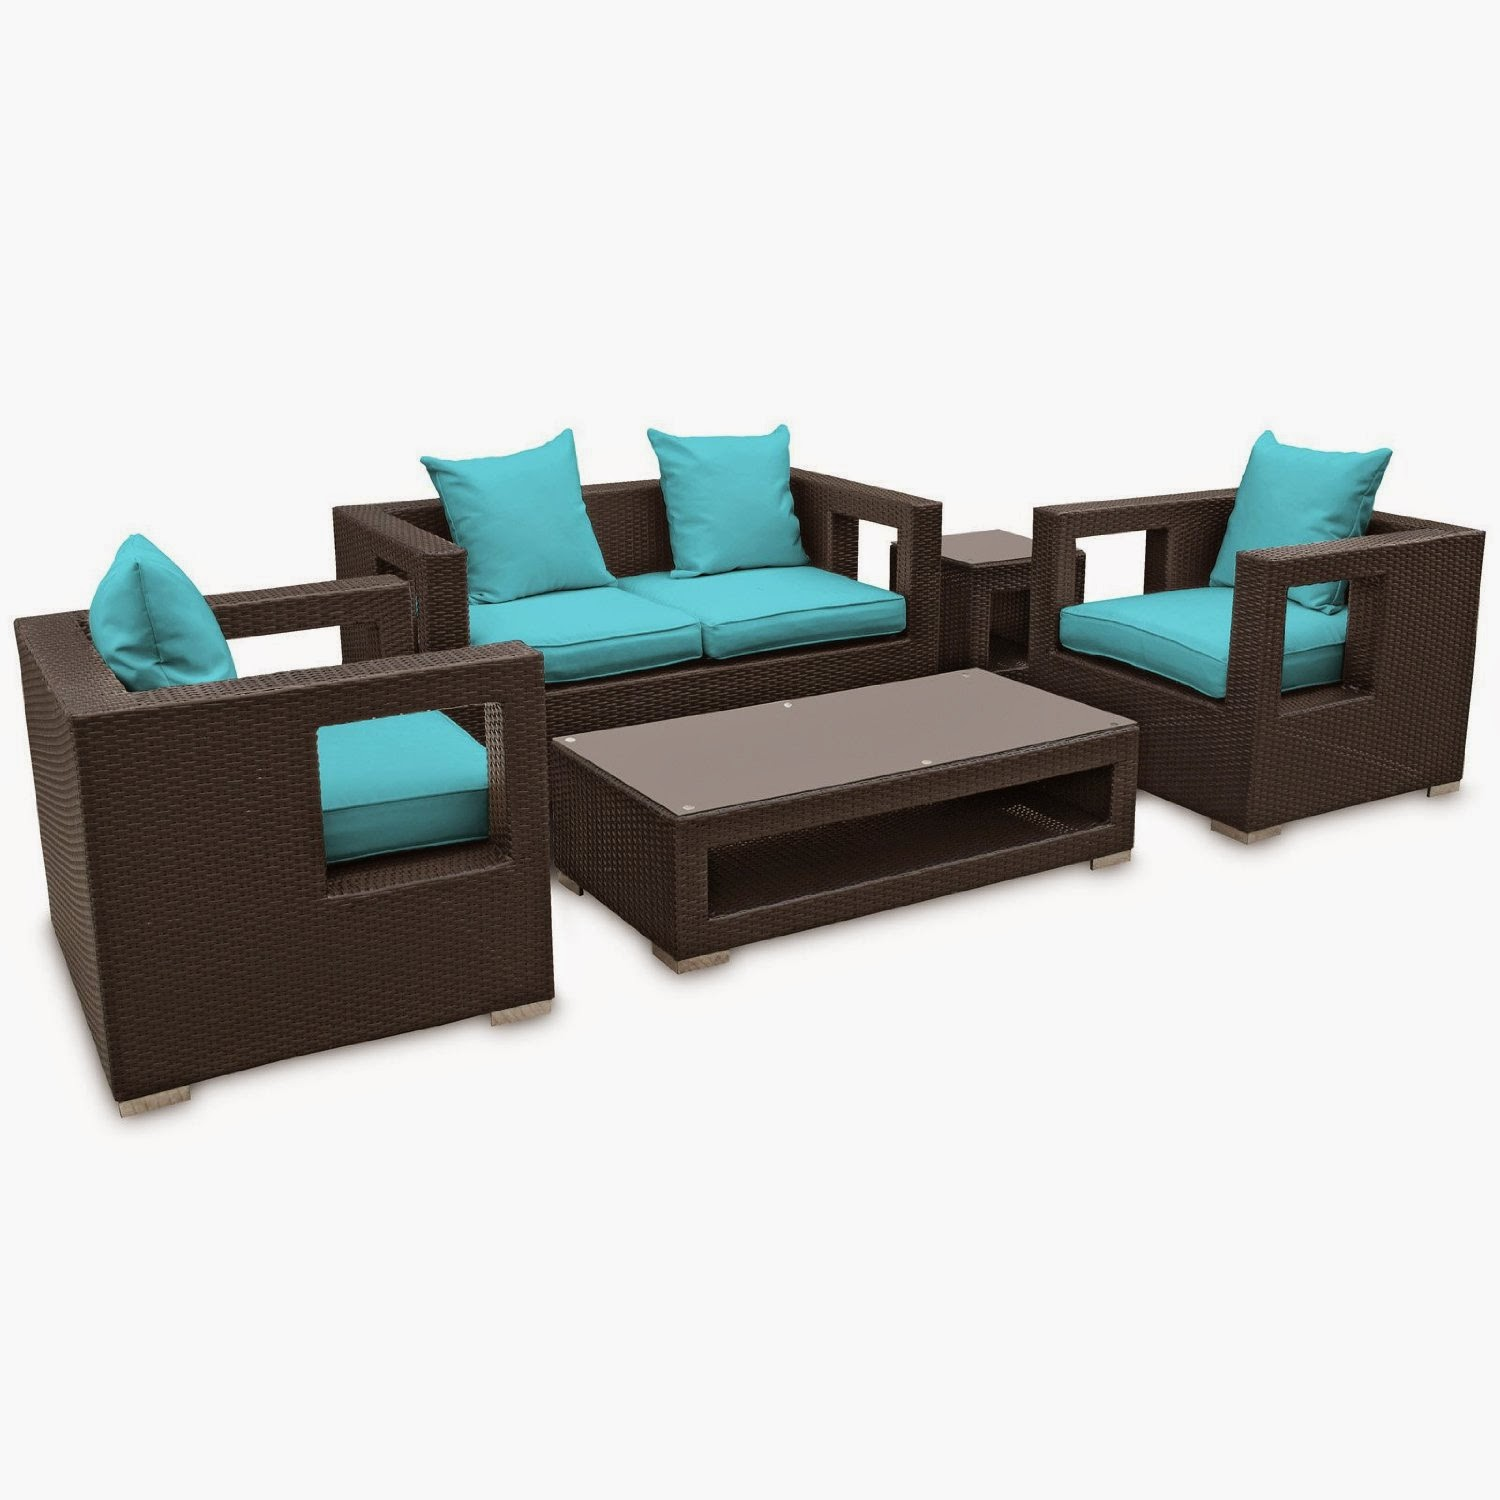 Modern Outdoor Sofa Outdoor Rattan Sofa Furniture Sets Uk